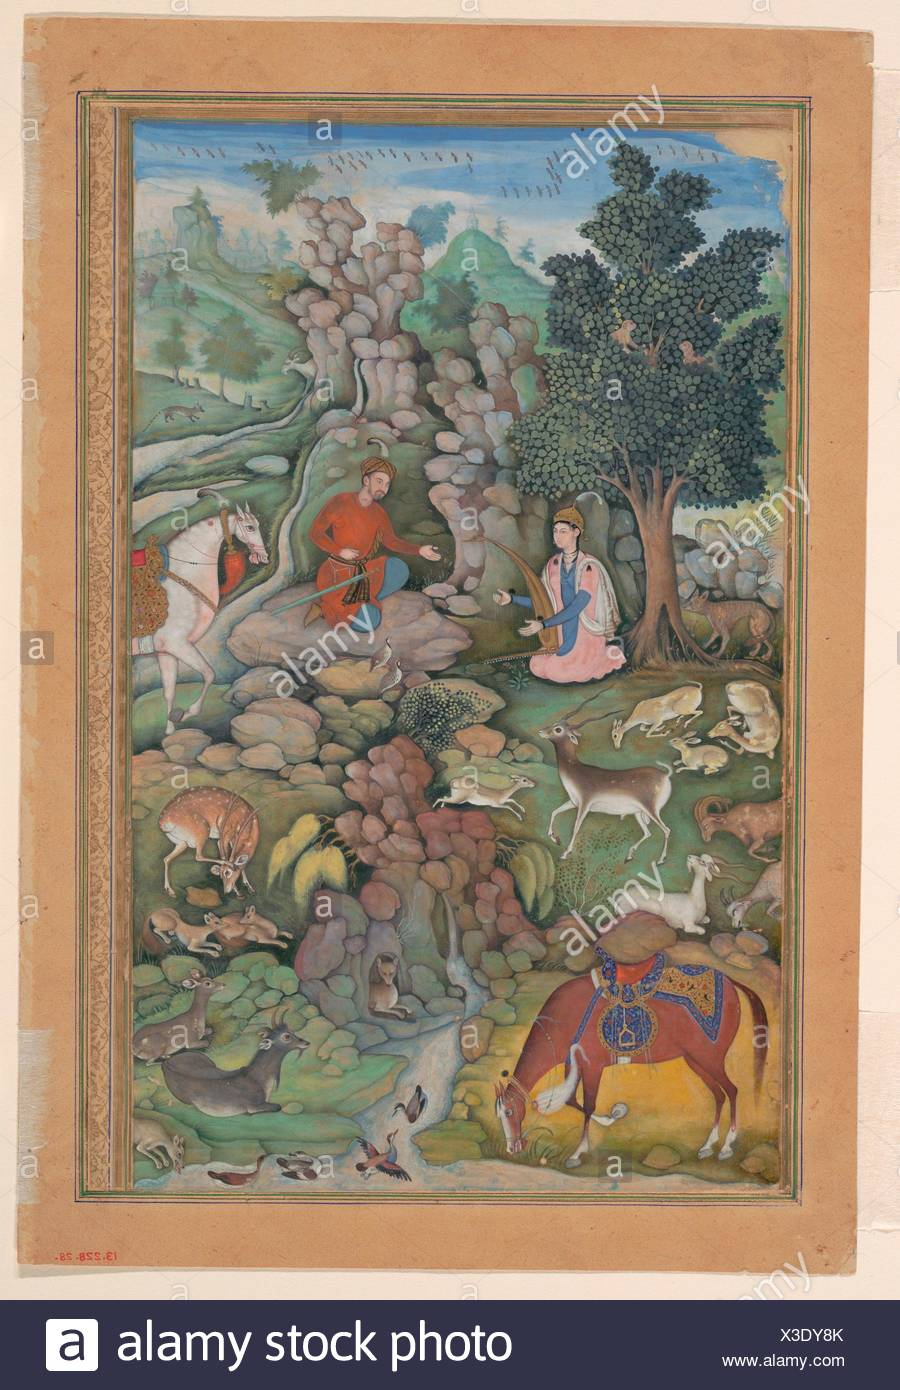 Bahram Gur Sees a Herd of Deer Mesmerized by Dilaram' s Music, Folio from a Khamsa (Quintet) of Amir Khusrau Dihlavi. Poet: Amir Khusrau Dihlavi - Stock Image